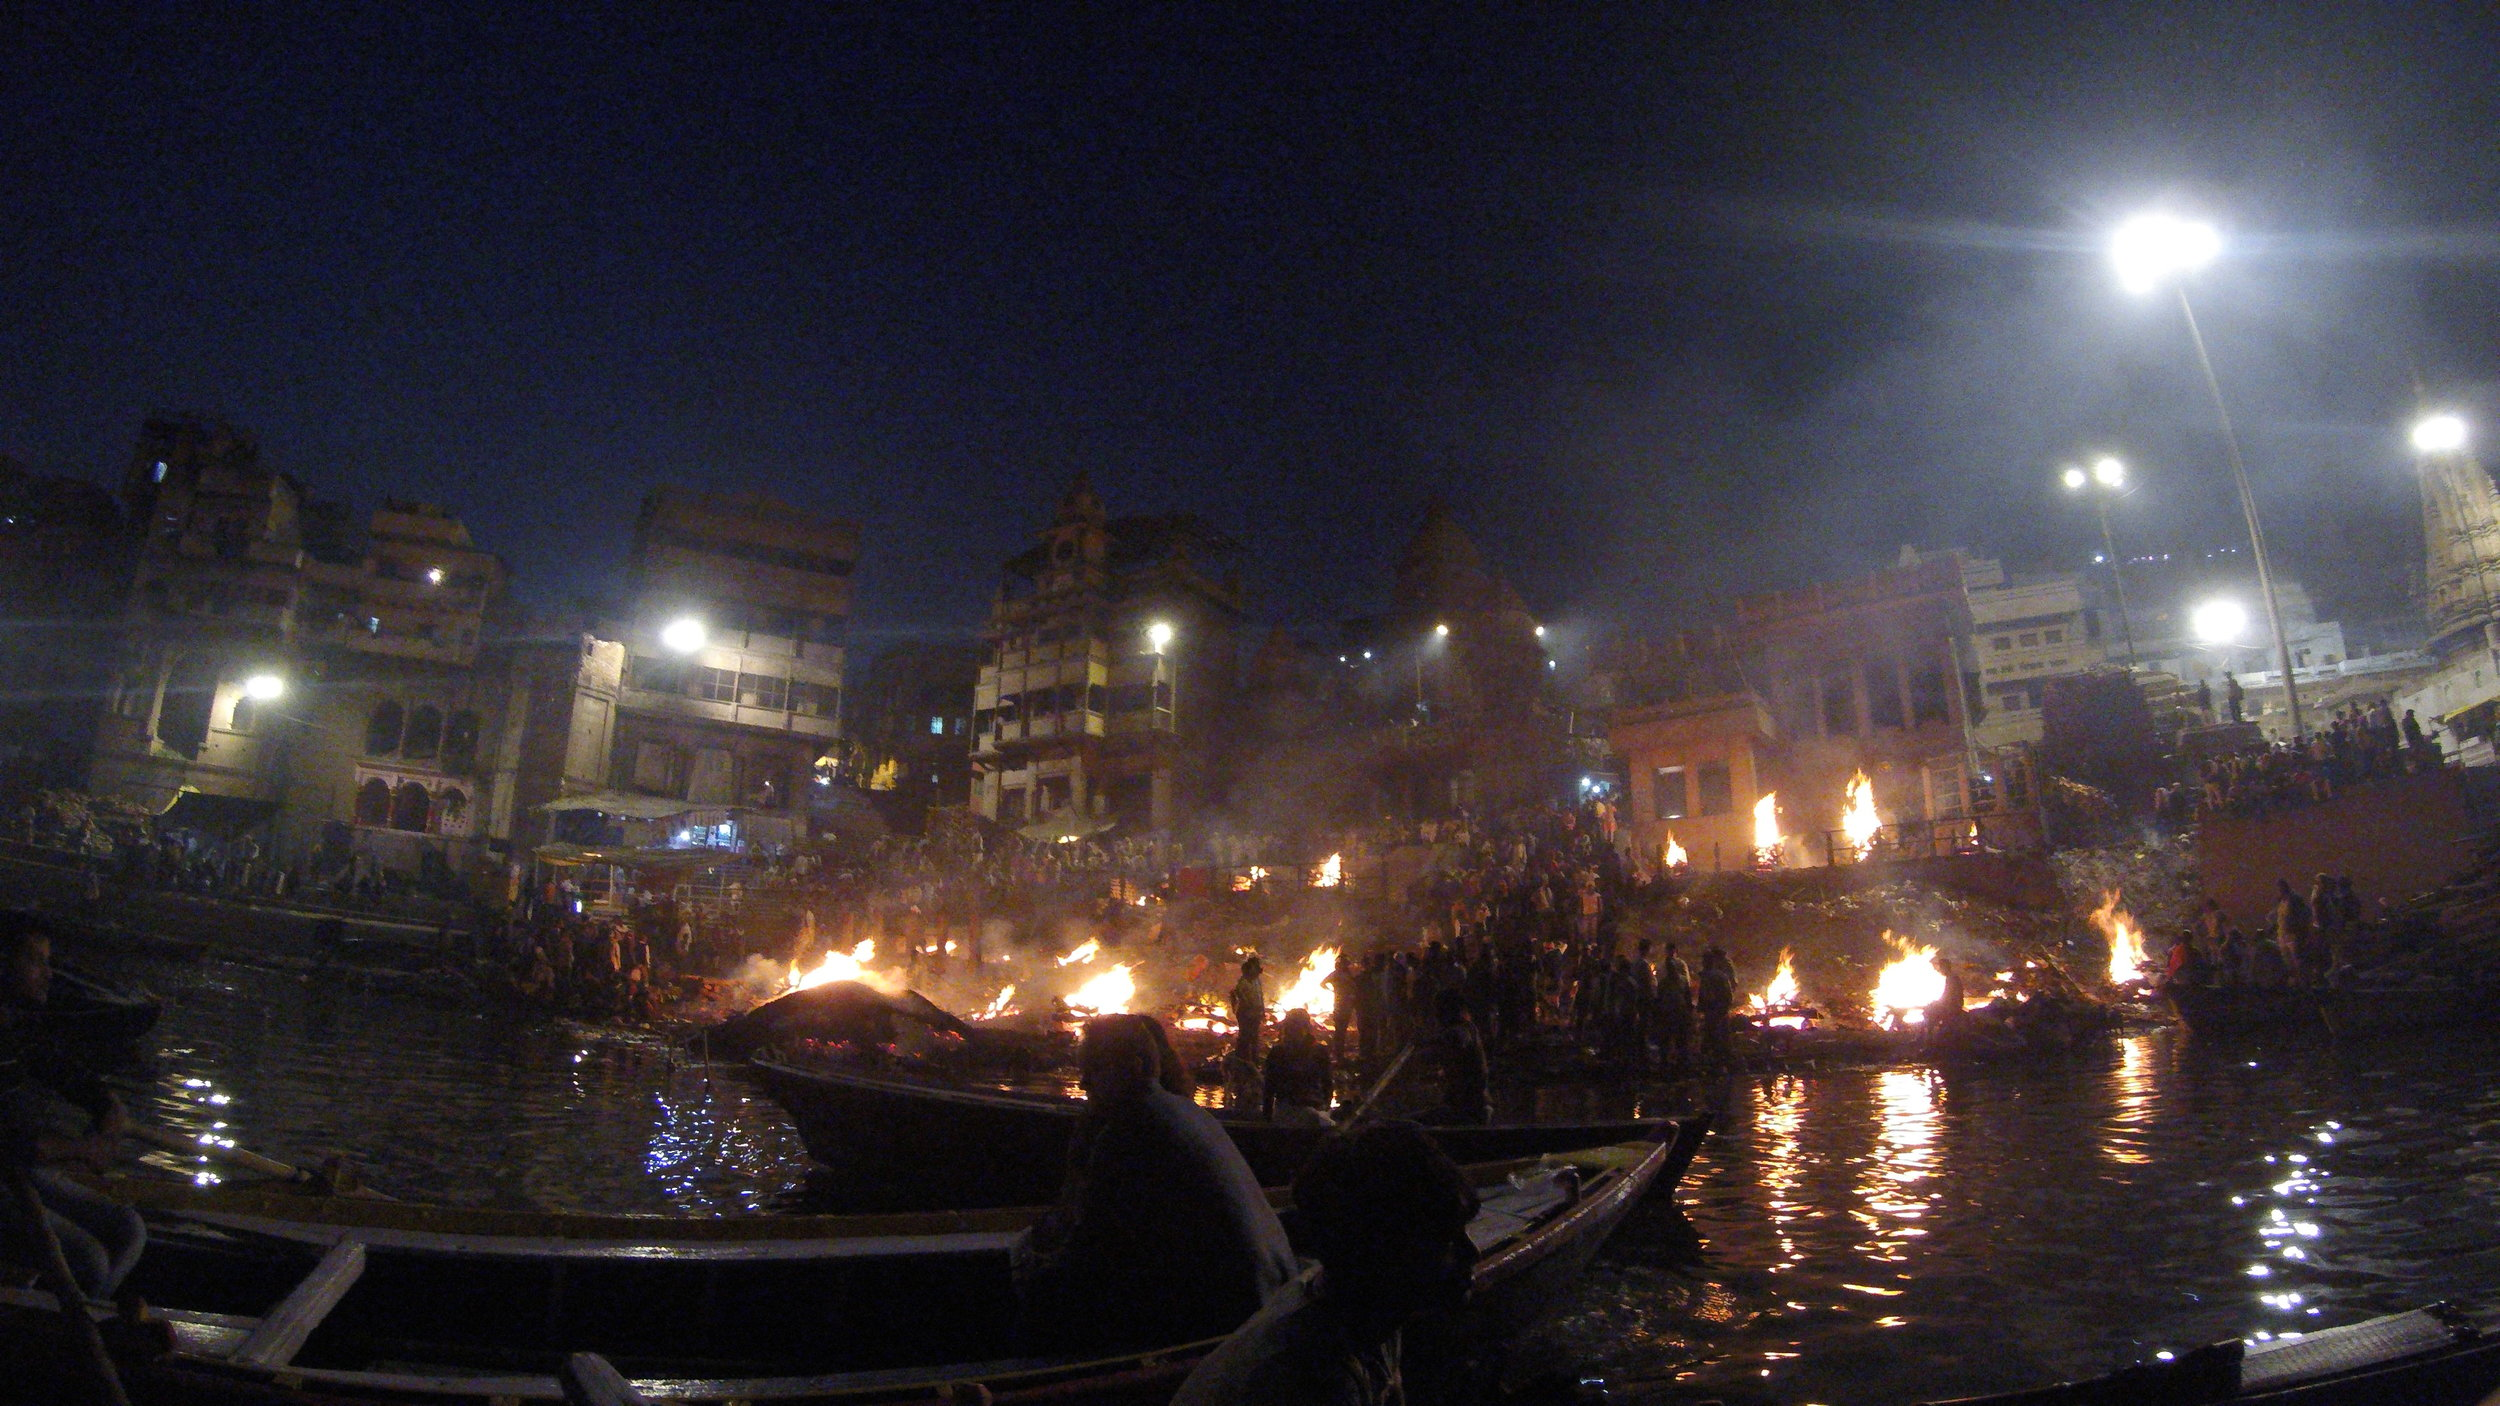 View of Manikarnika Ghat from the river at night